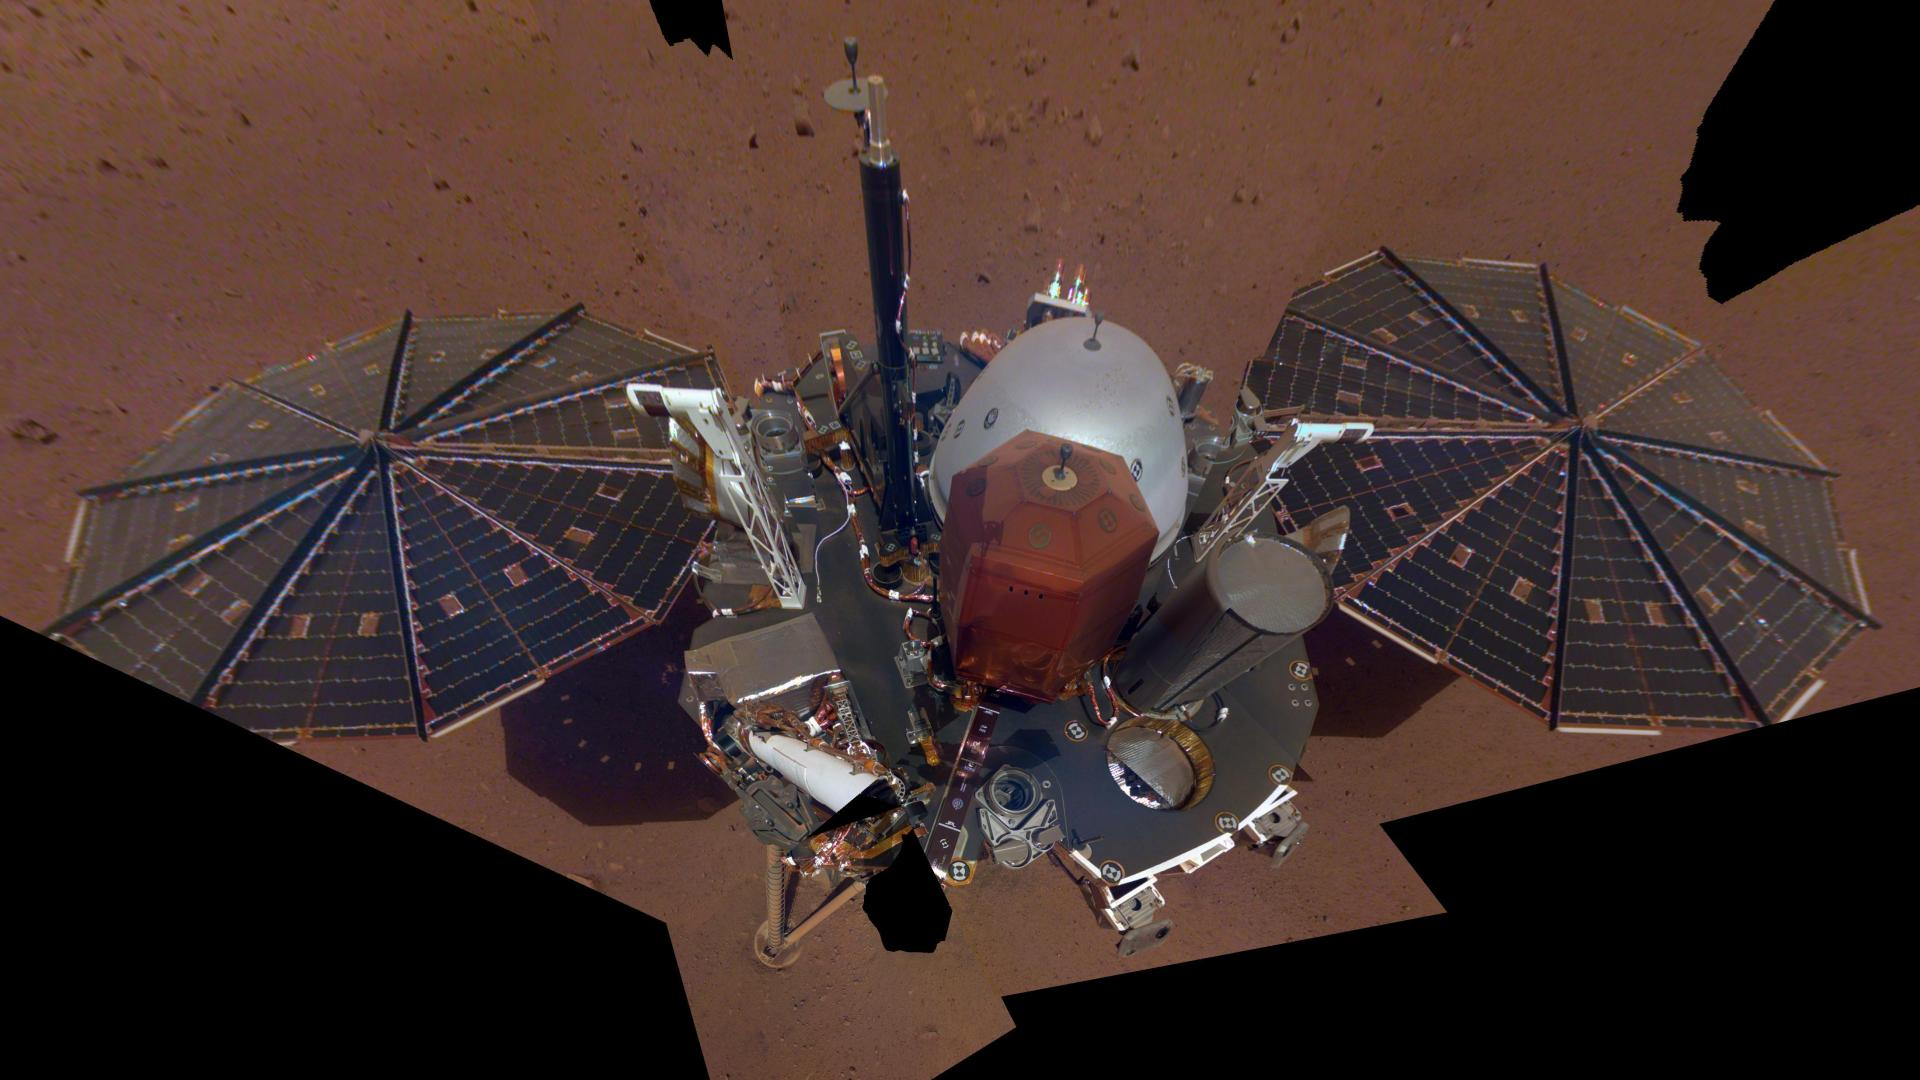 InSight lander on the Martian surface